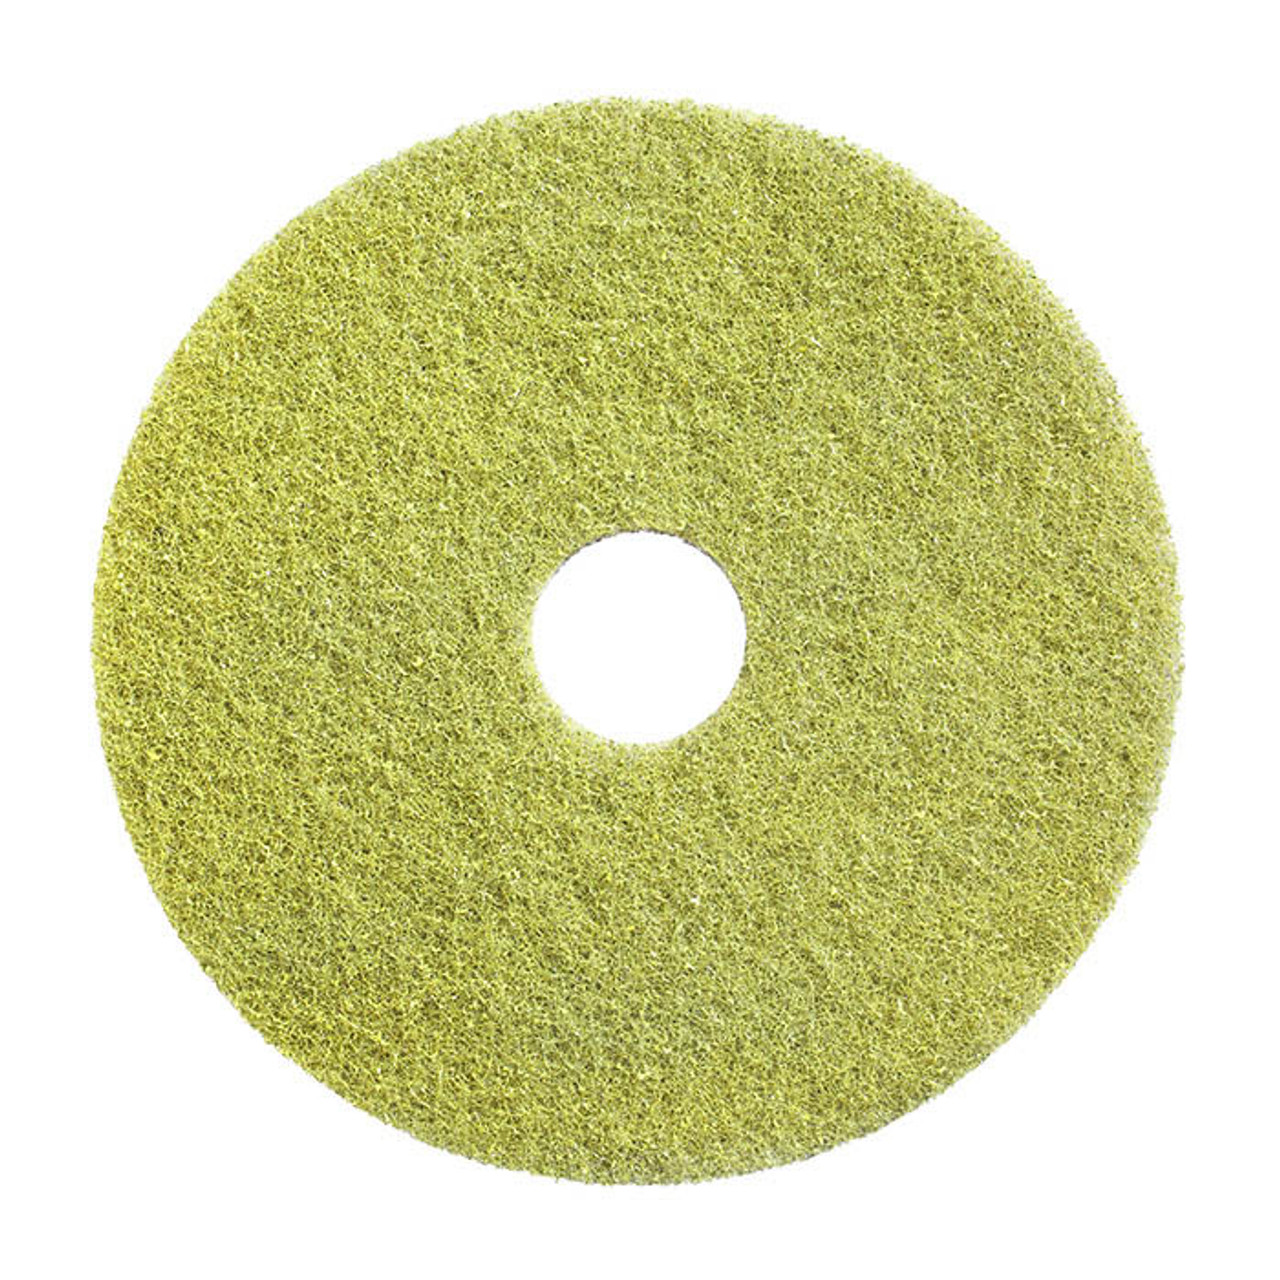 """20/"""" Americo Manufacturing 435520 Twister Green 3000 Grit Floor Pad 2 Pack"""